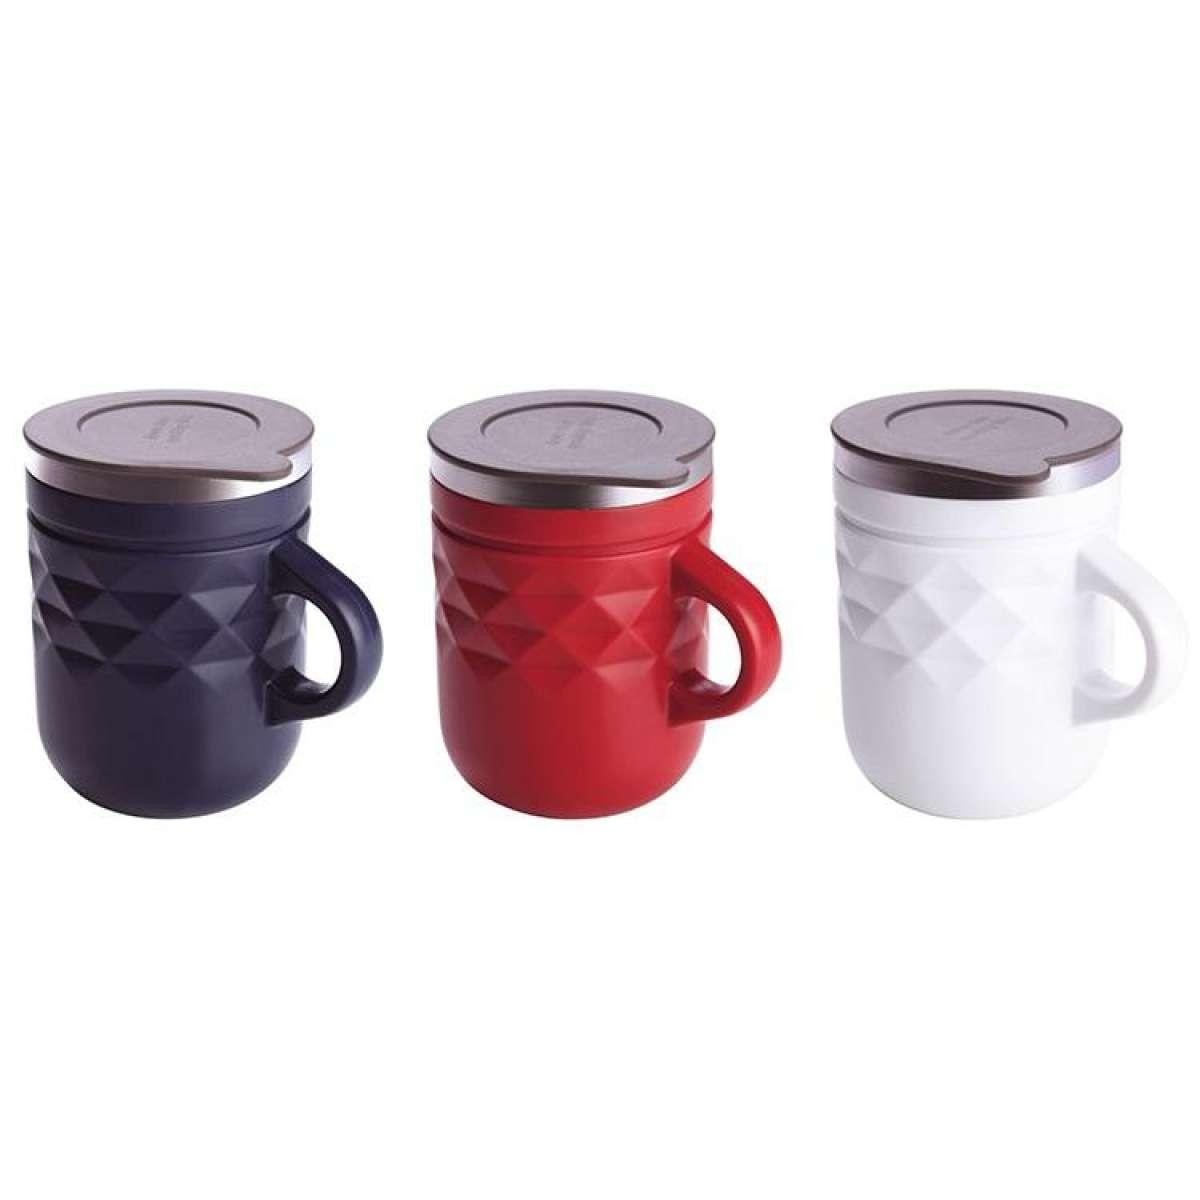 Stainless Steel Coffee Hot Mug Buy Online At Best Prices In Bangladesh Daraz Com Bd